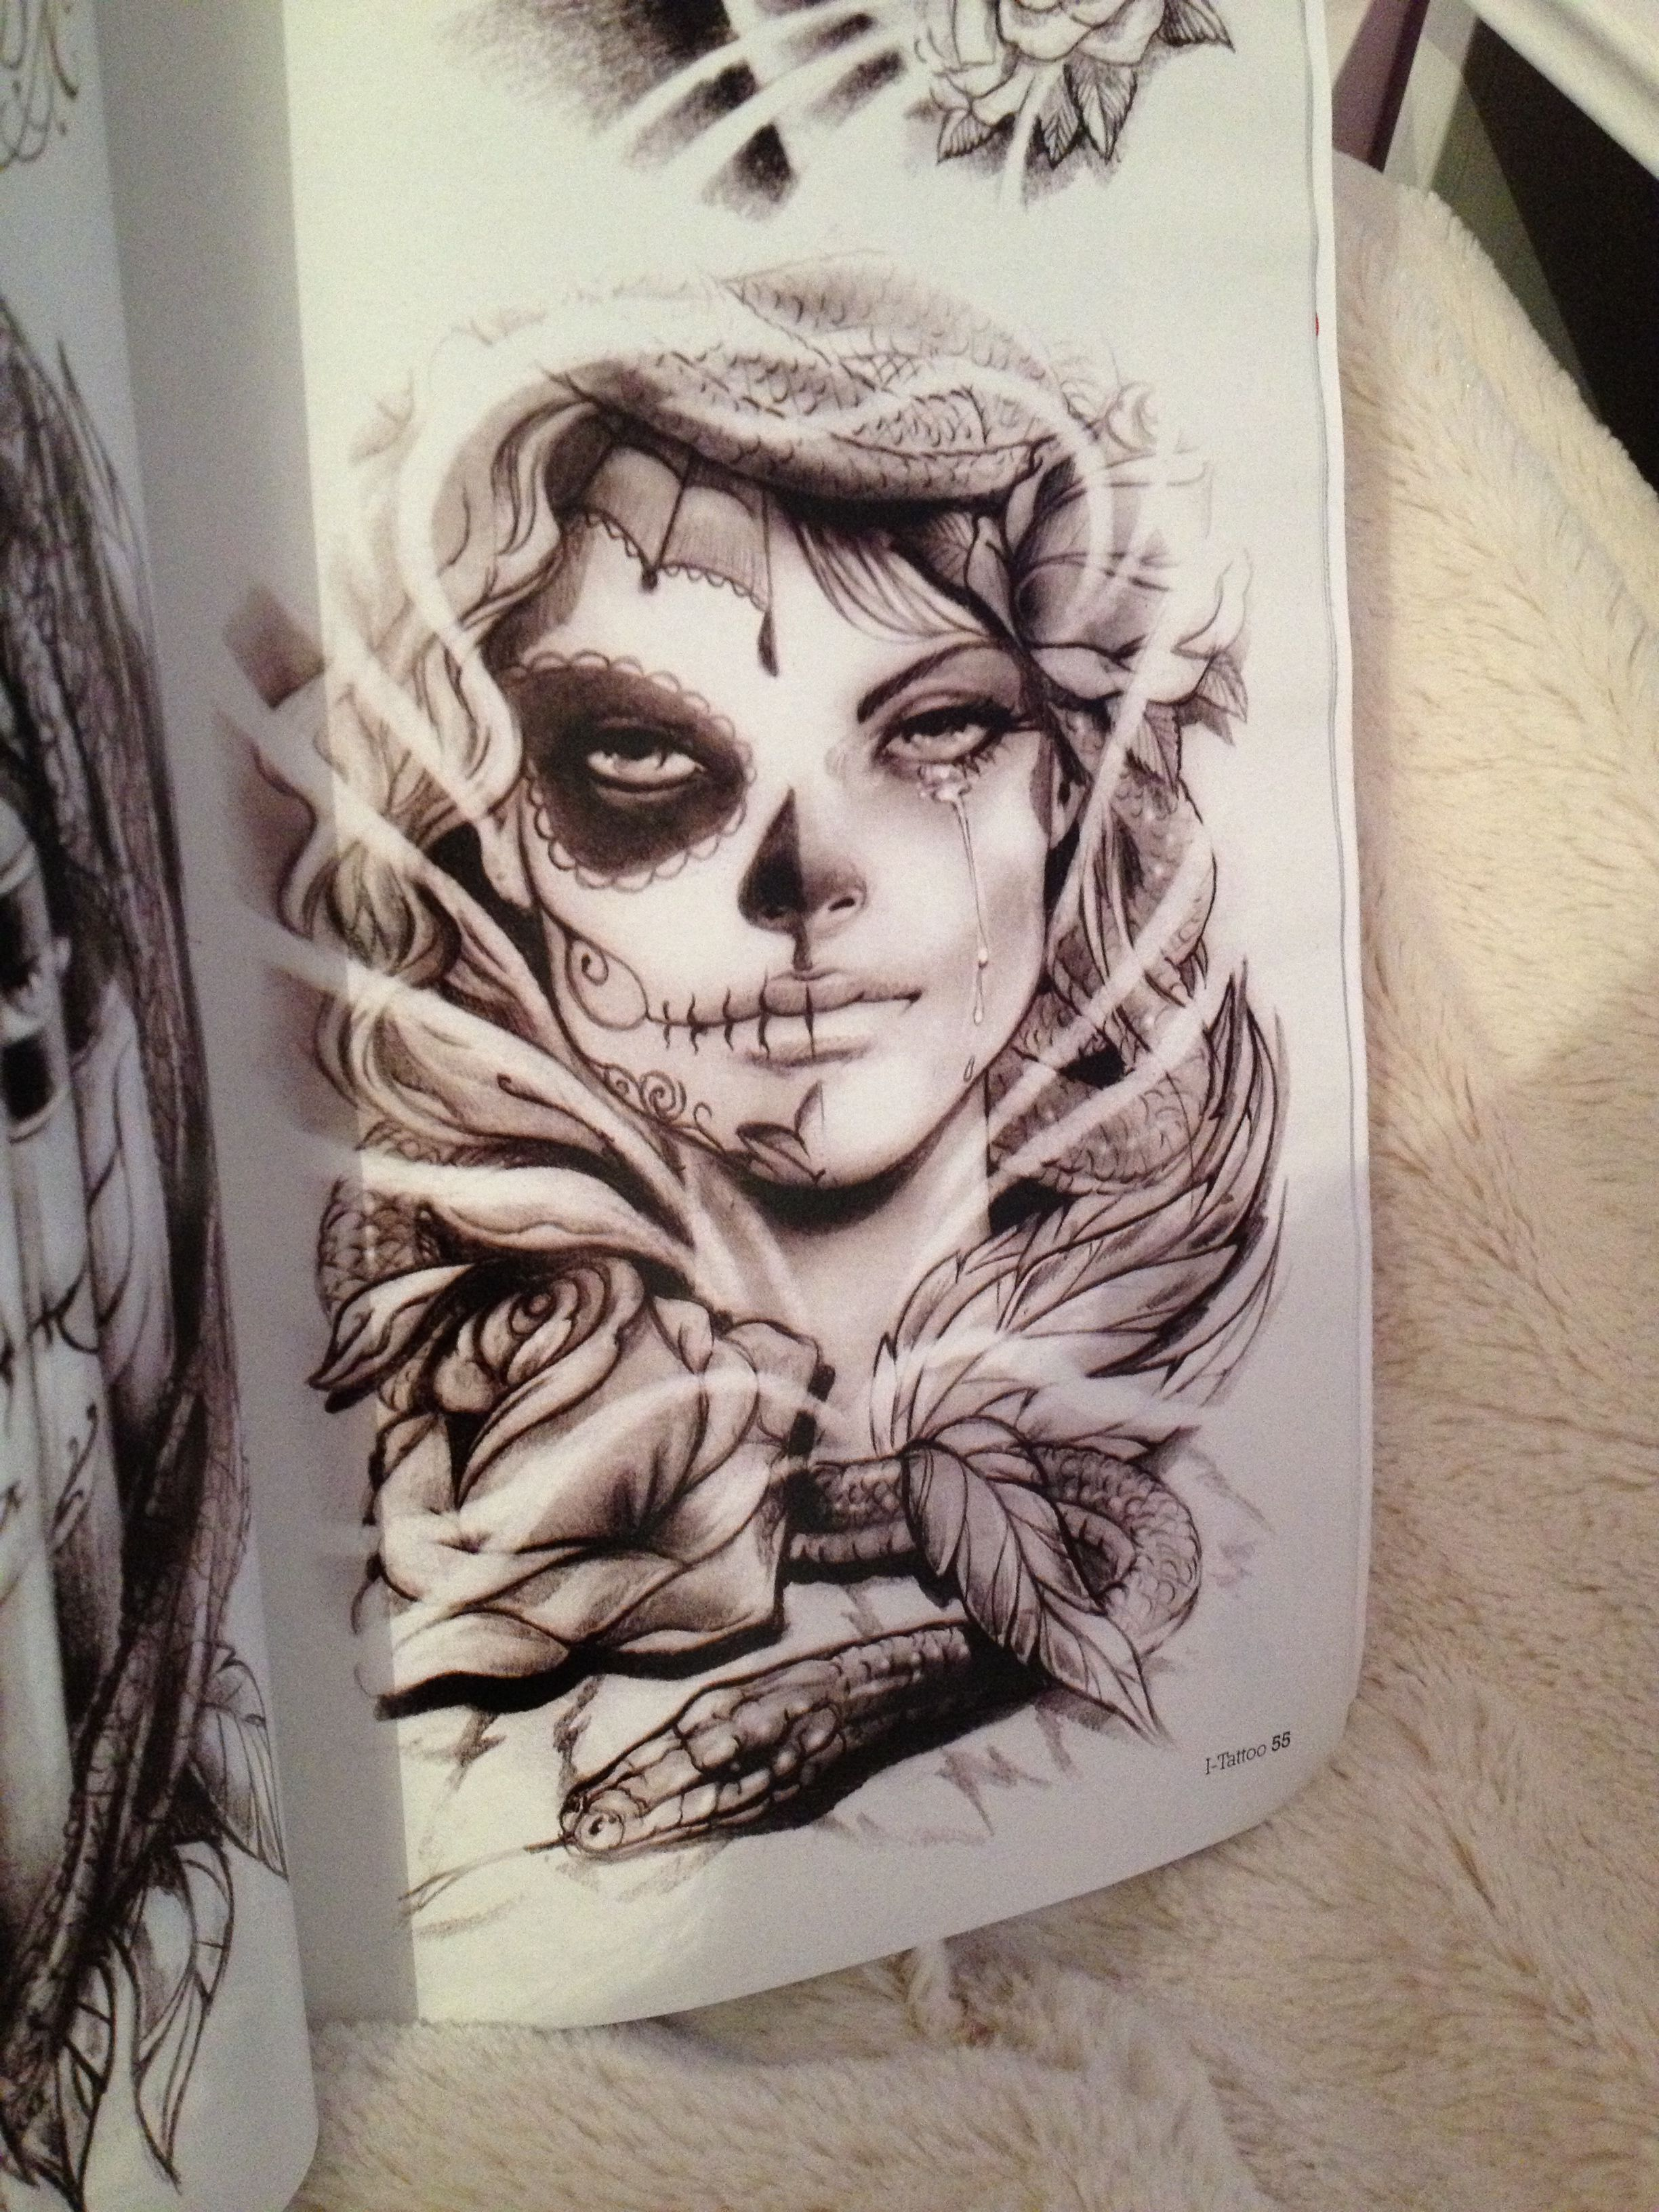 Day of the dead mexican girl tattoo ideas pinterest for Mexican girl tattoos